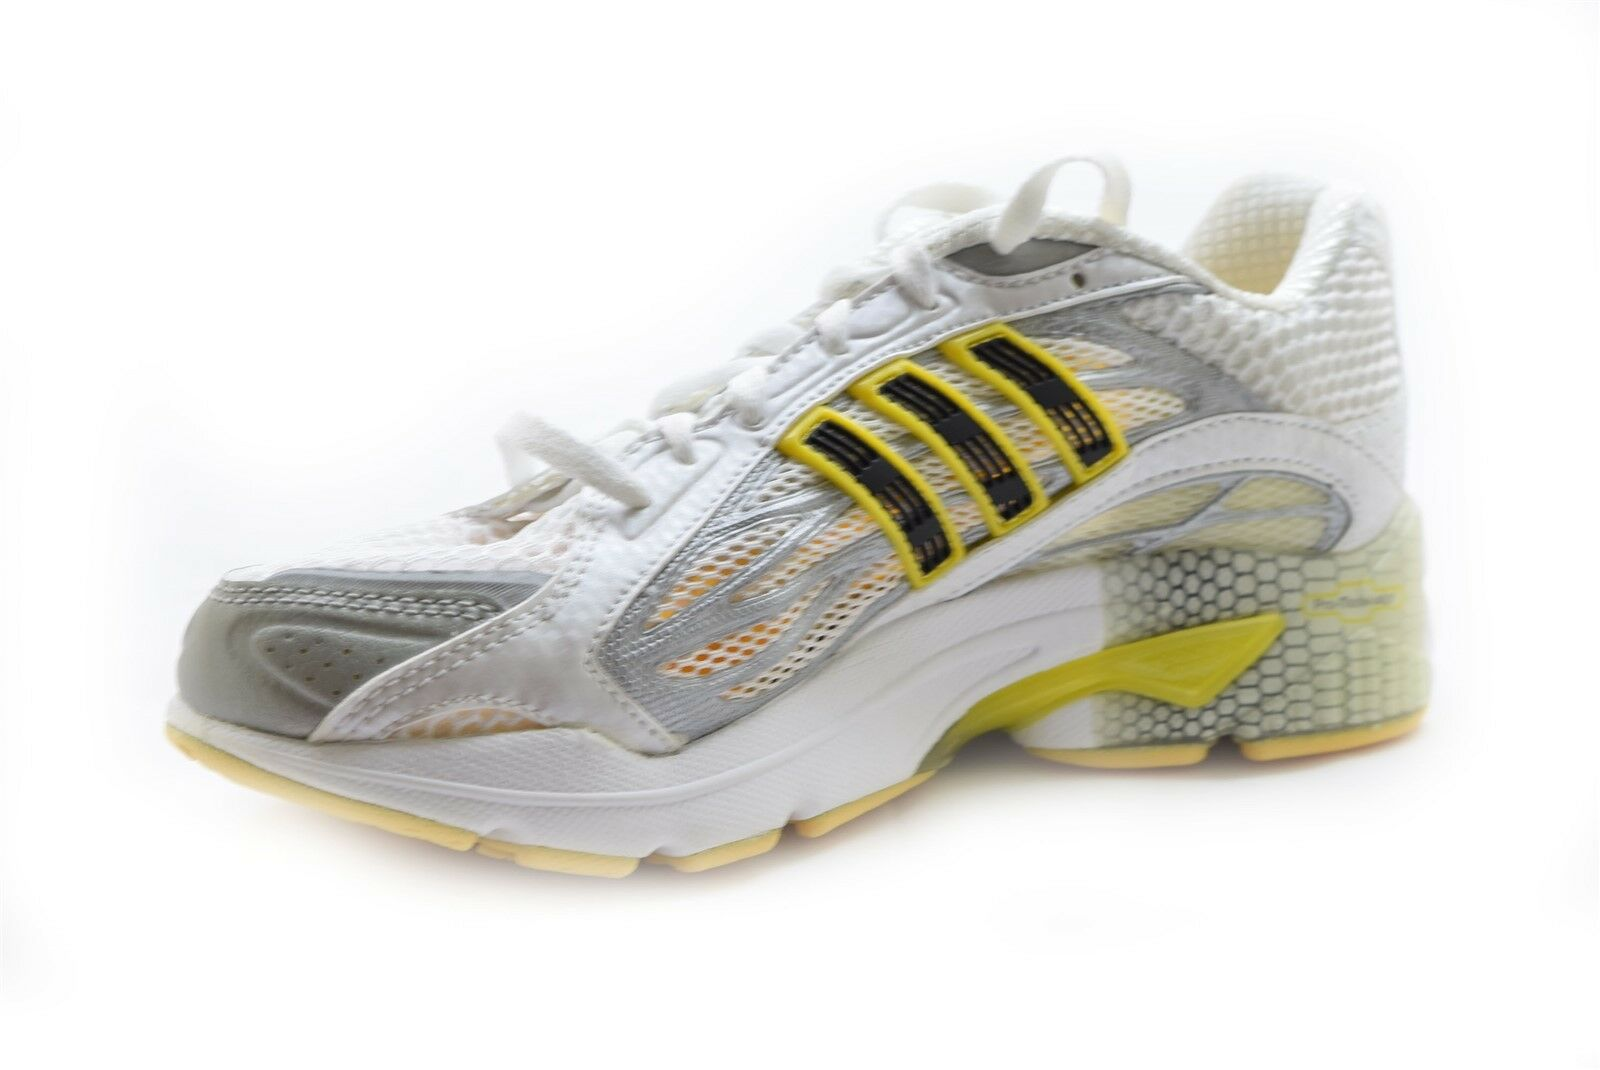 Adidas Women's CC redterdam Running shoes White Yellow Black Size 6 - NIB